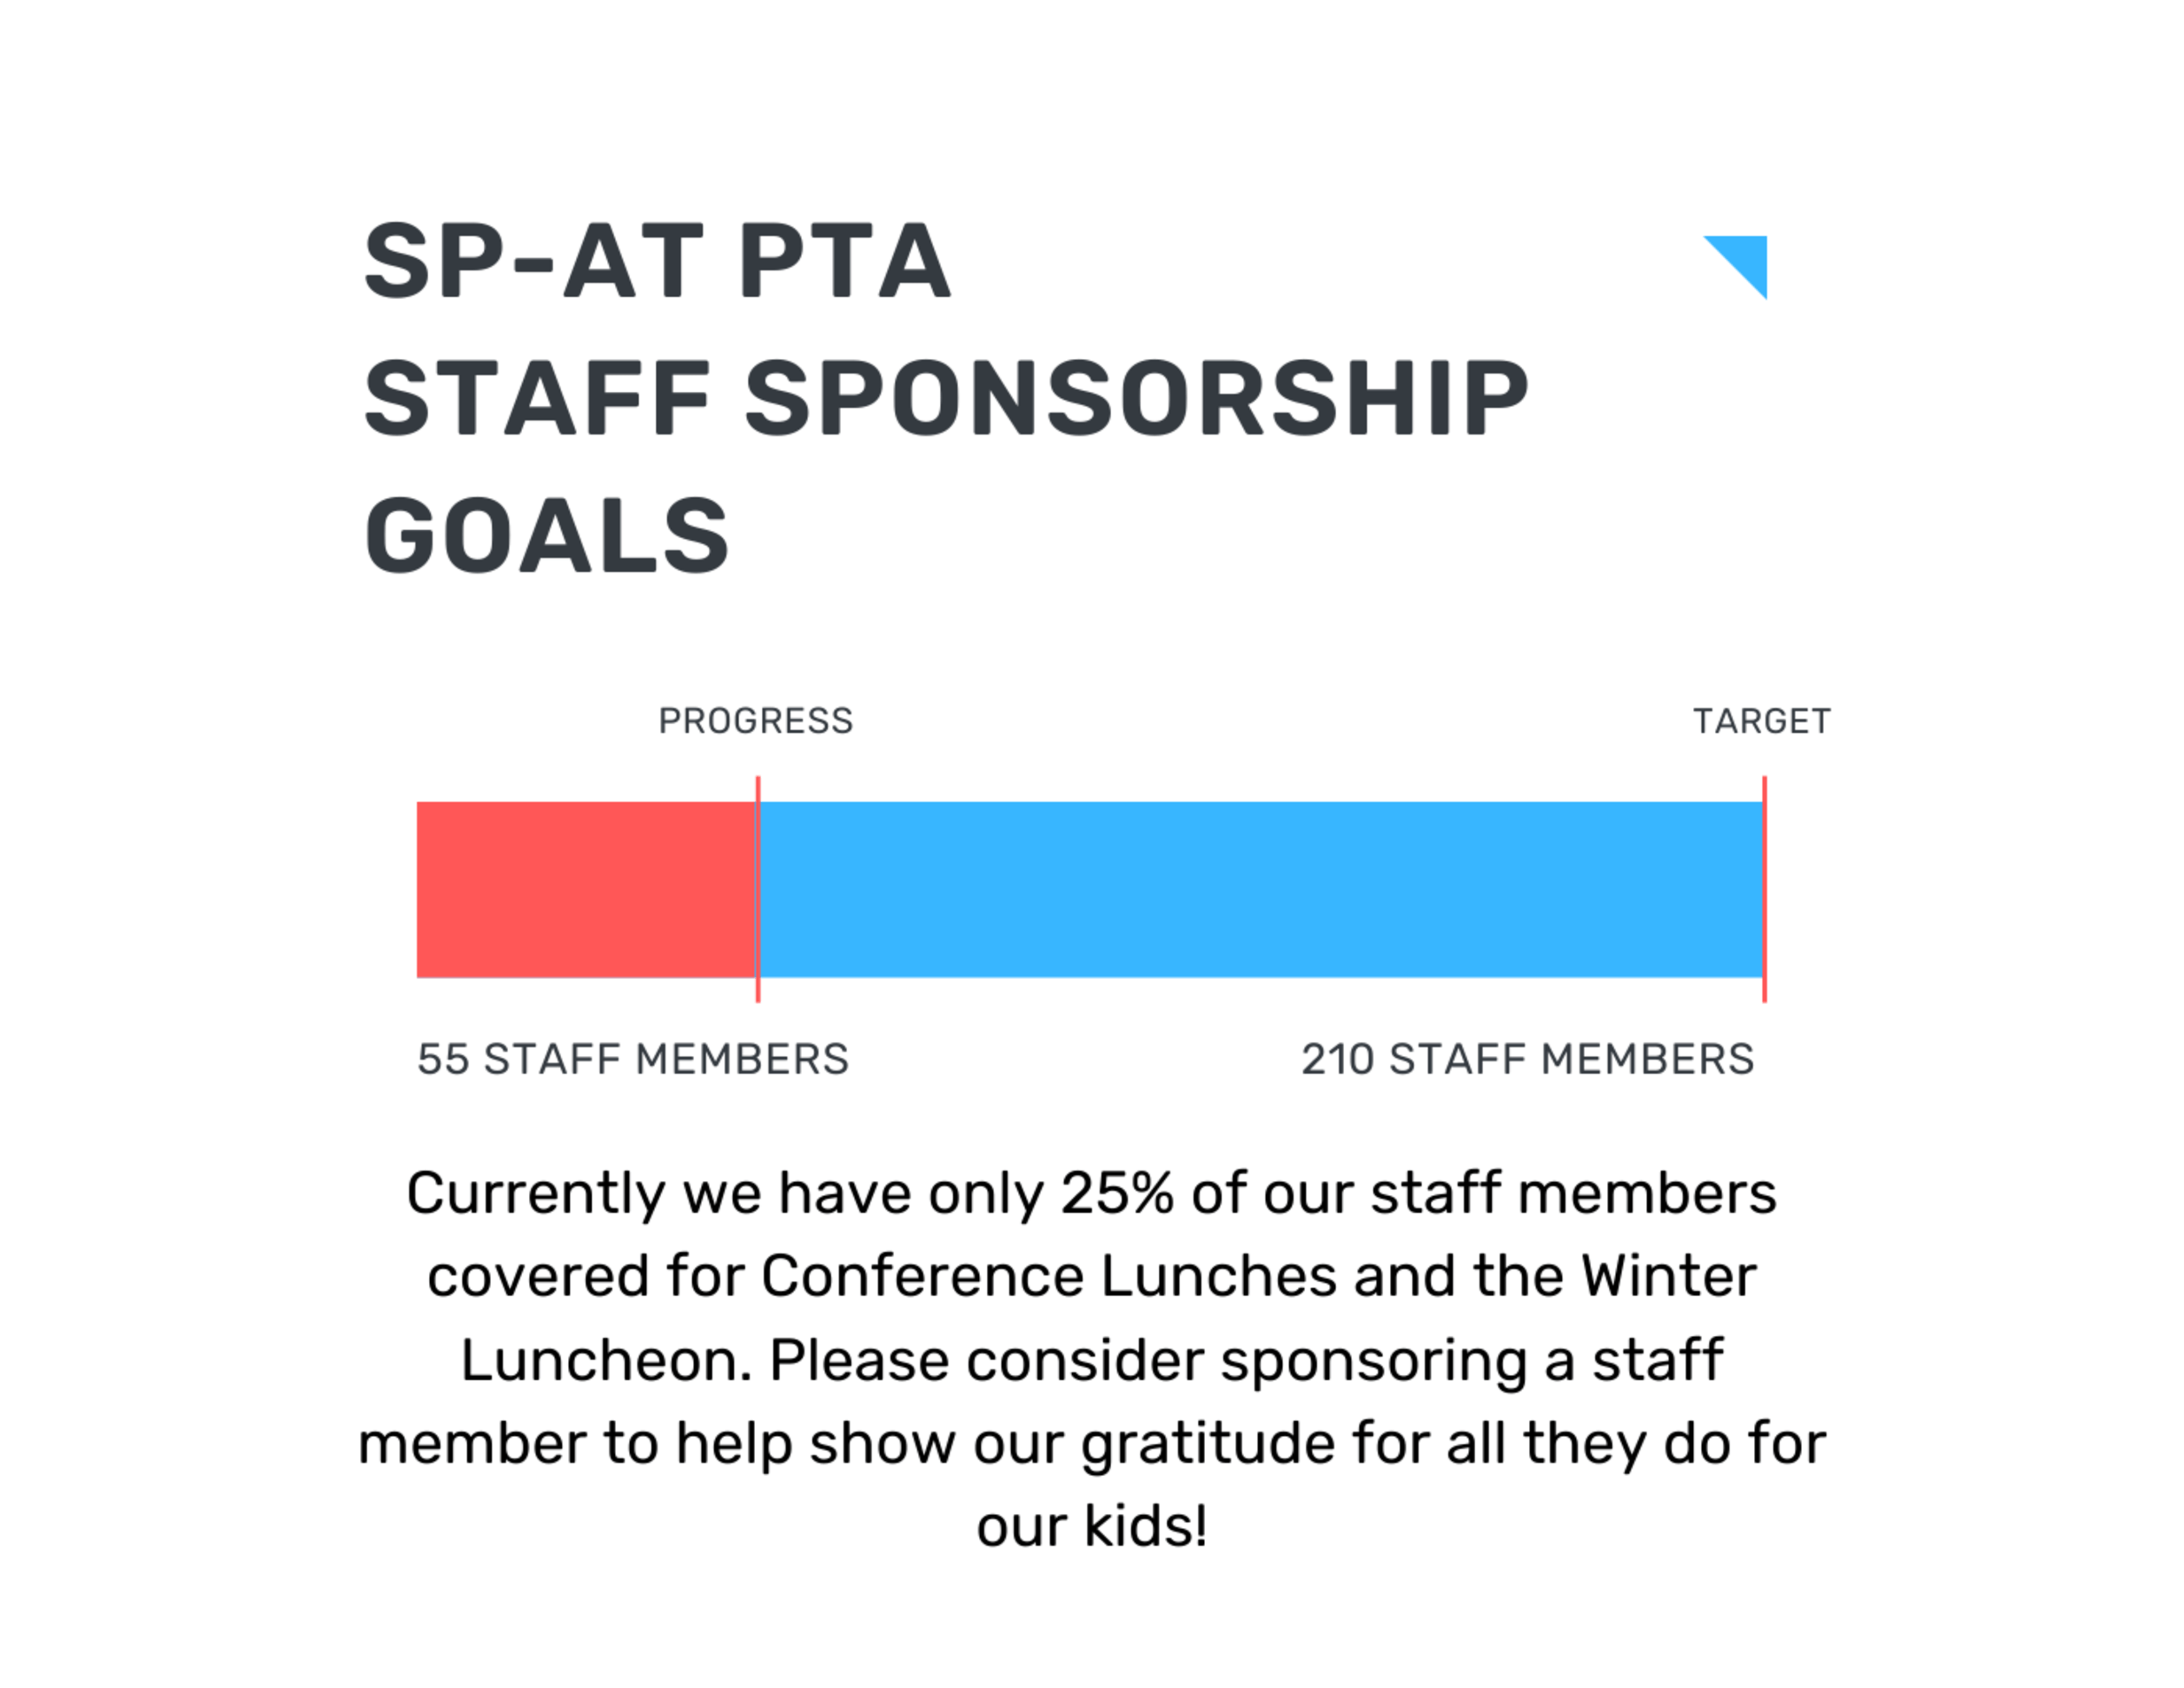 SP-AT PTA Staff Sponsorship Goals. Currently we have only 25% of our staff members covered for Conference Lunches and the Winter Luncheon. PLease consider sponsoring a staff member to help show our gratitude for all they do for our kids! (At top of image is a graph in red and blue depicting the 25% versus the remainder.)